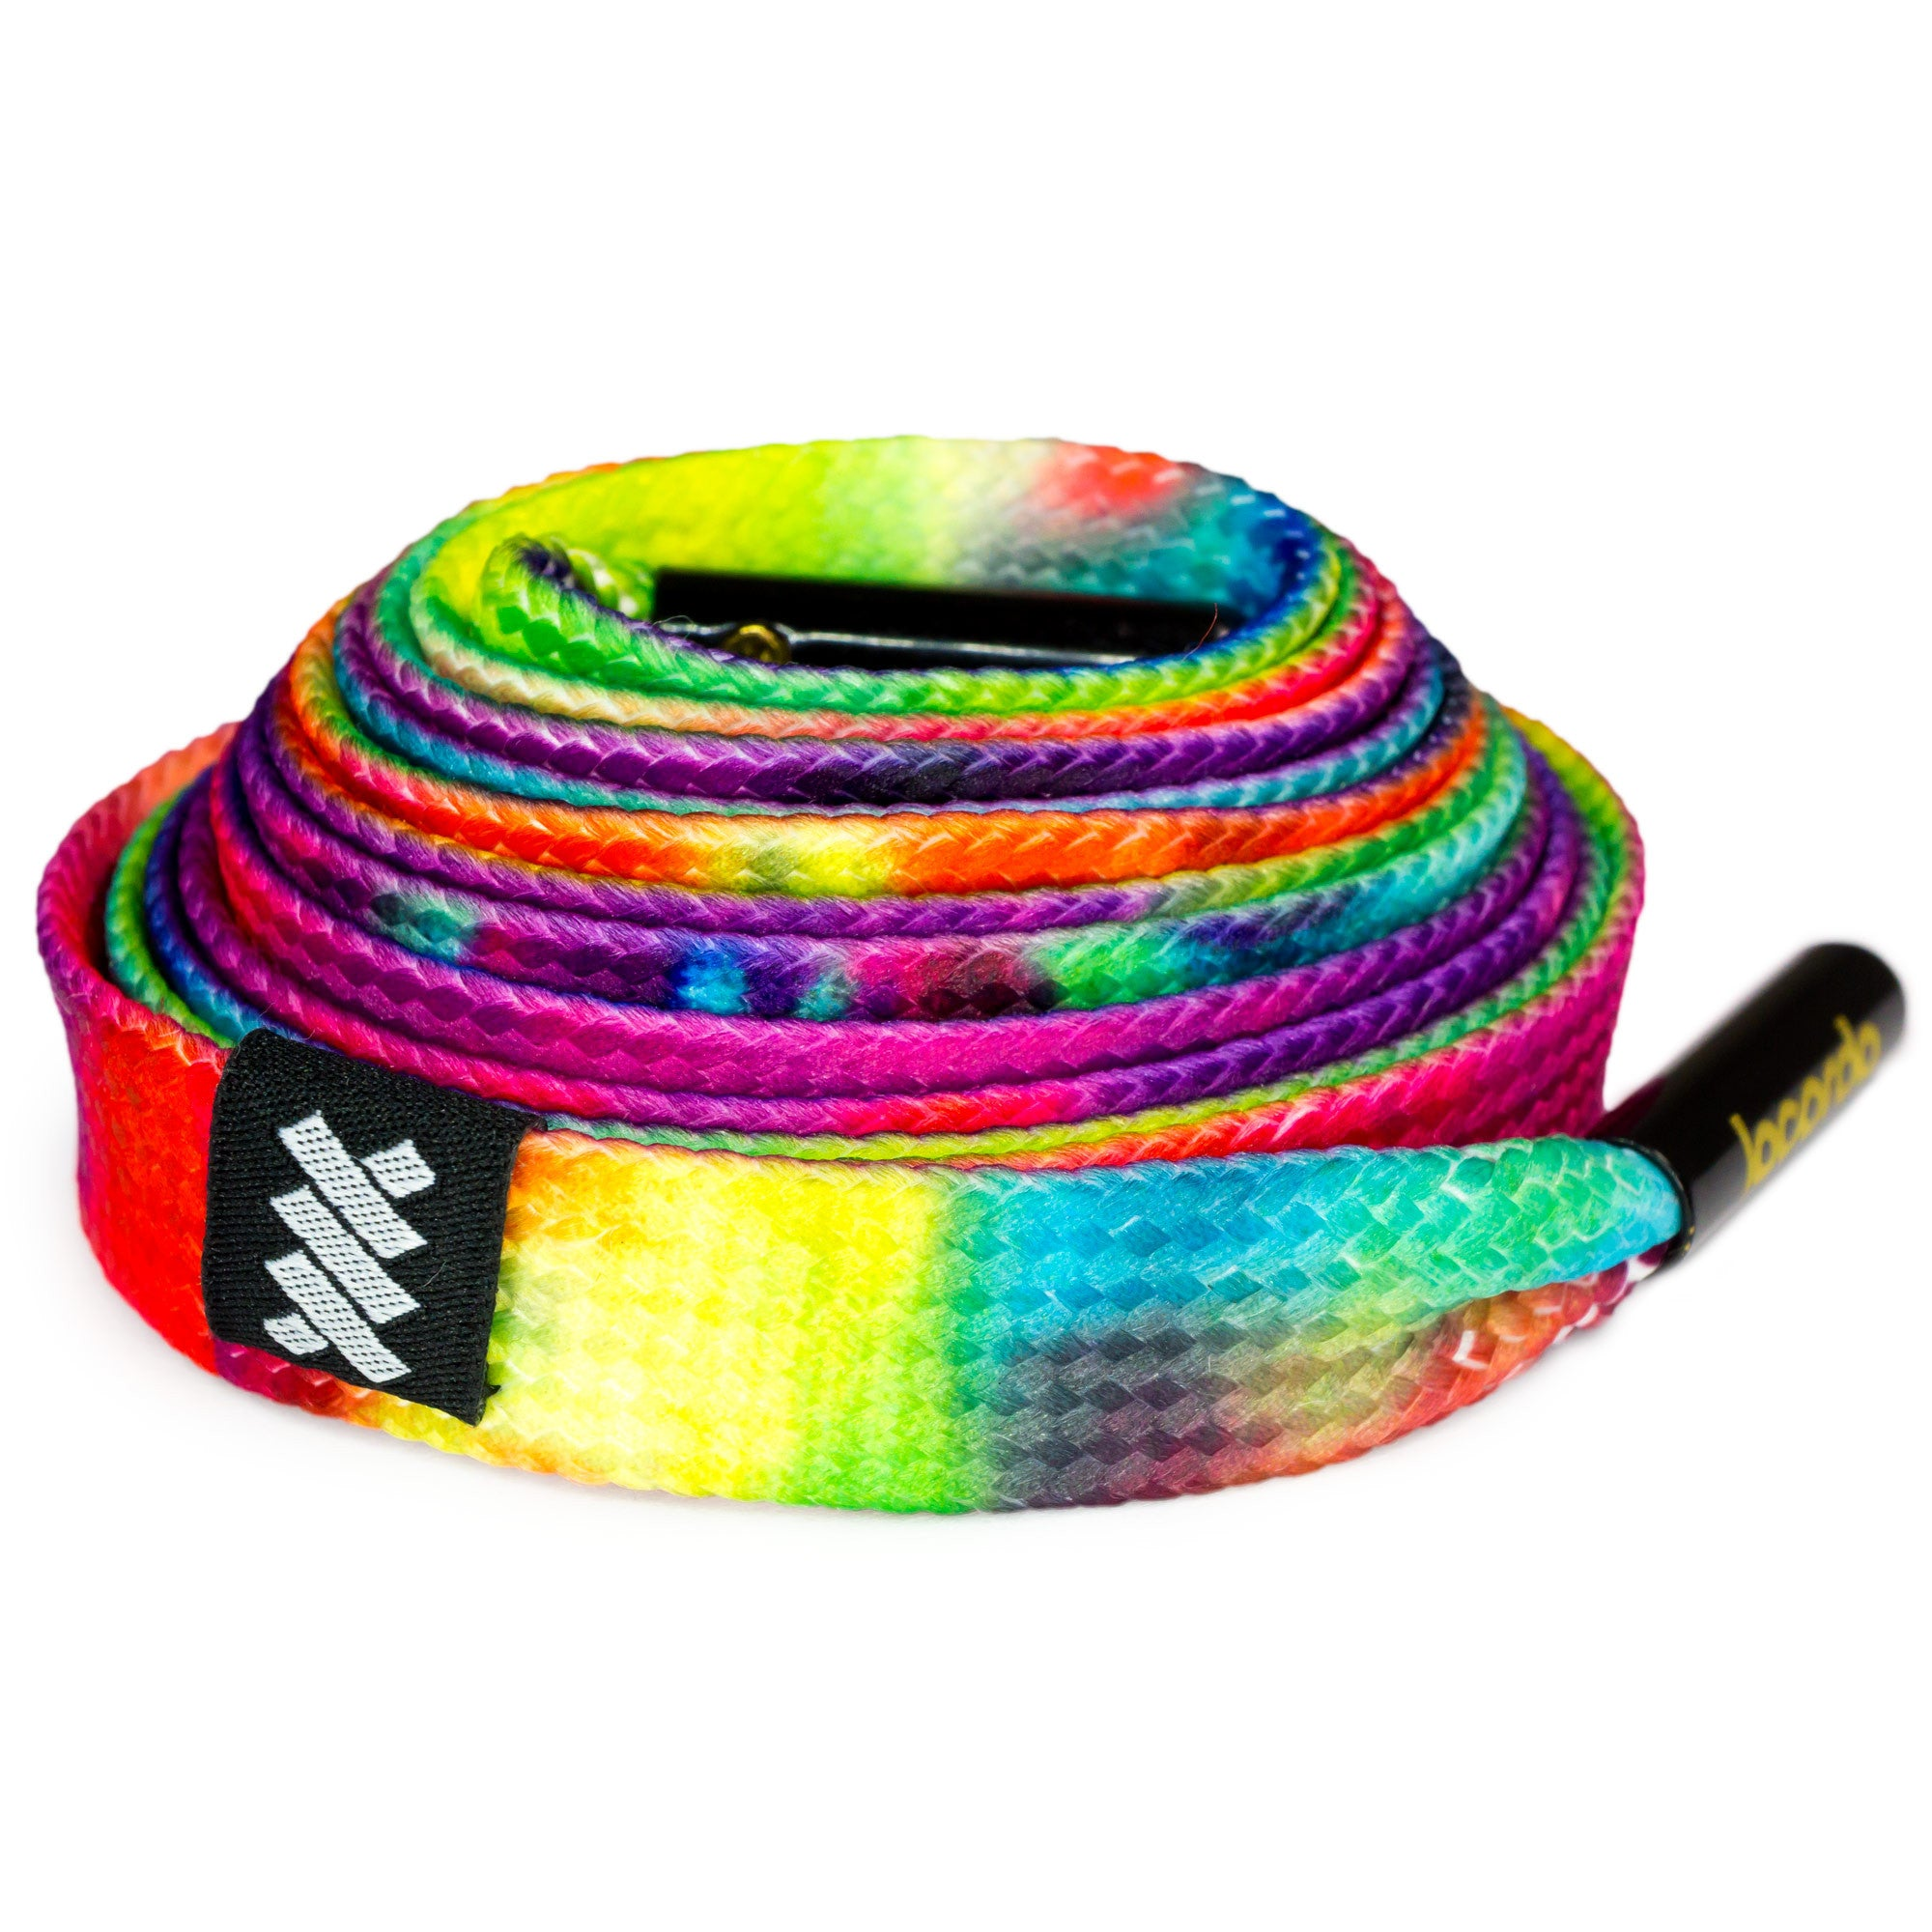 rainbow for of pcs rubber bands vibrant dye tie loom clips bracelet s usa picture p